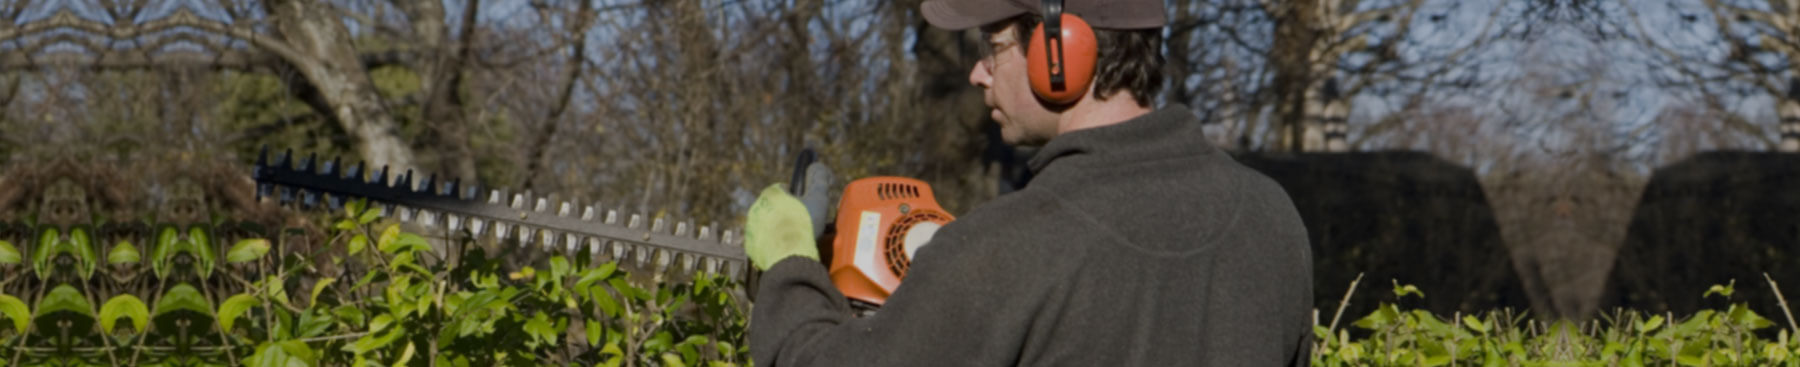 Kildonan Tree Service employs certified experts for tree service in Winnipeg.